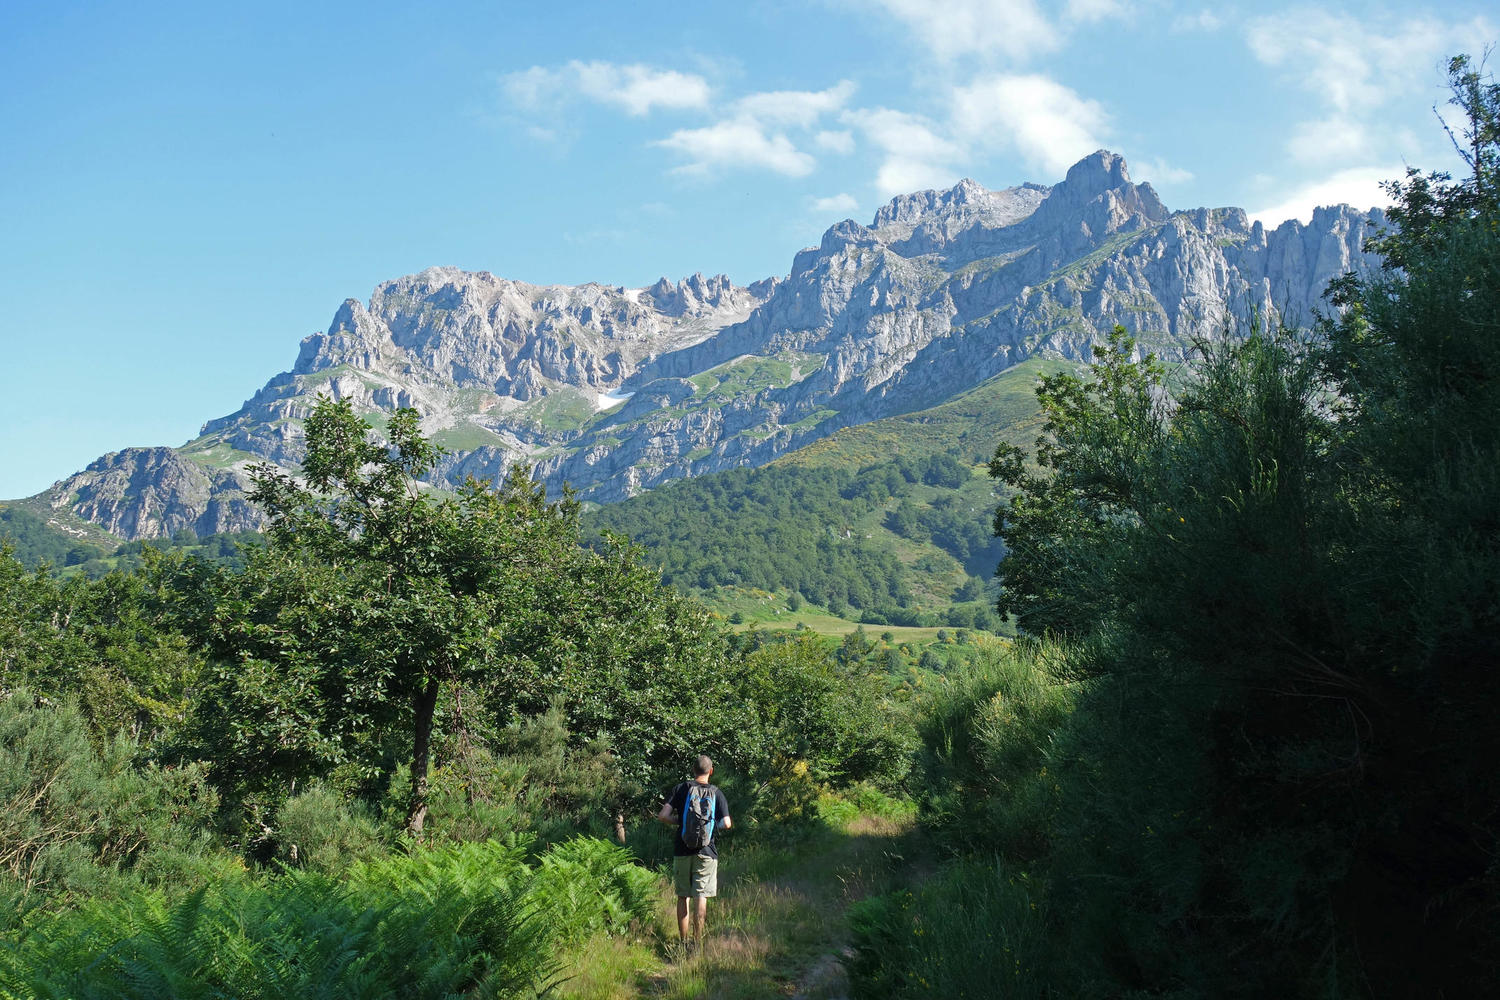 Hiking towards the Vega de Llos in Valdeon valley